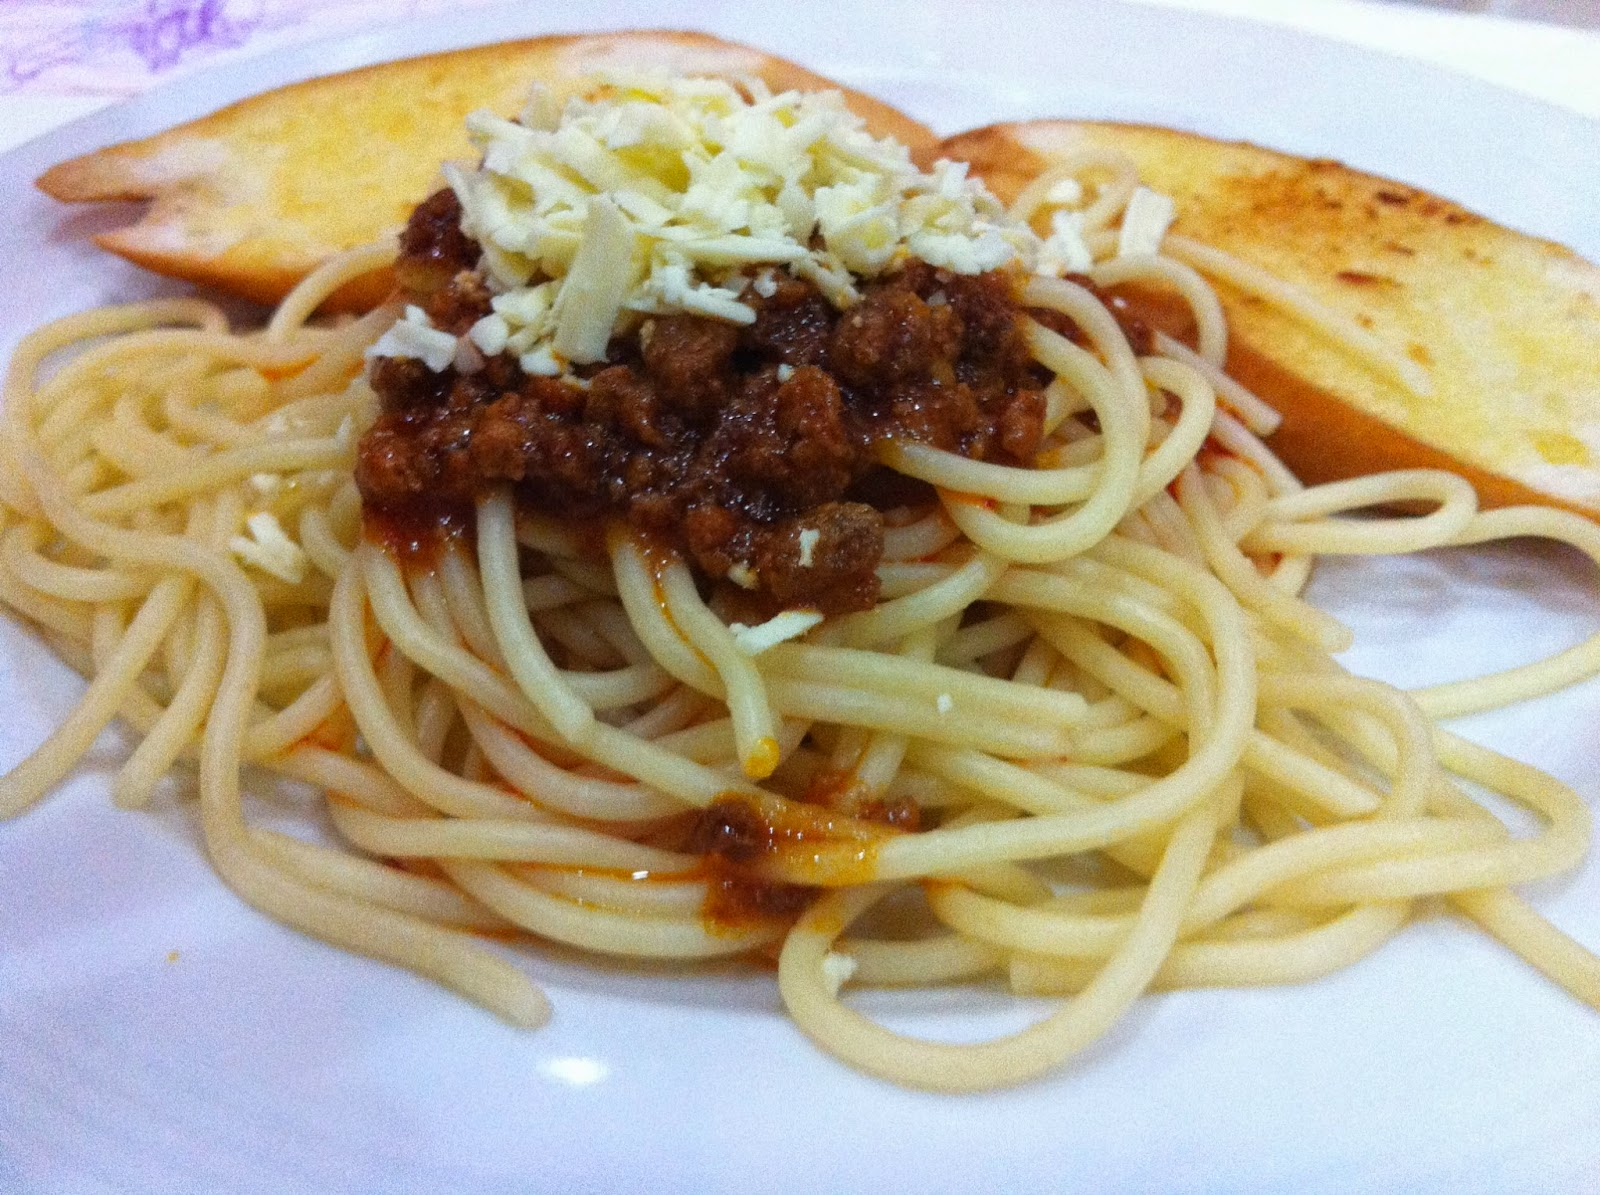 Sunny momville may 2014 pancake house spaghetti with meat sauce regular p175 ccuart Gallery